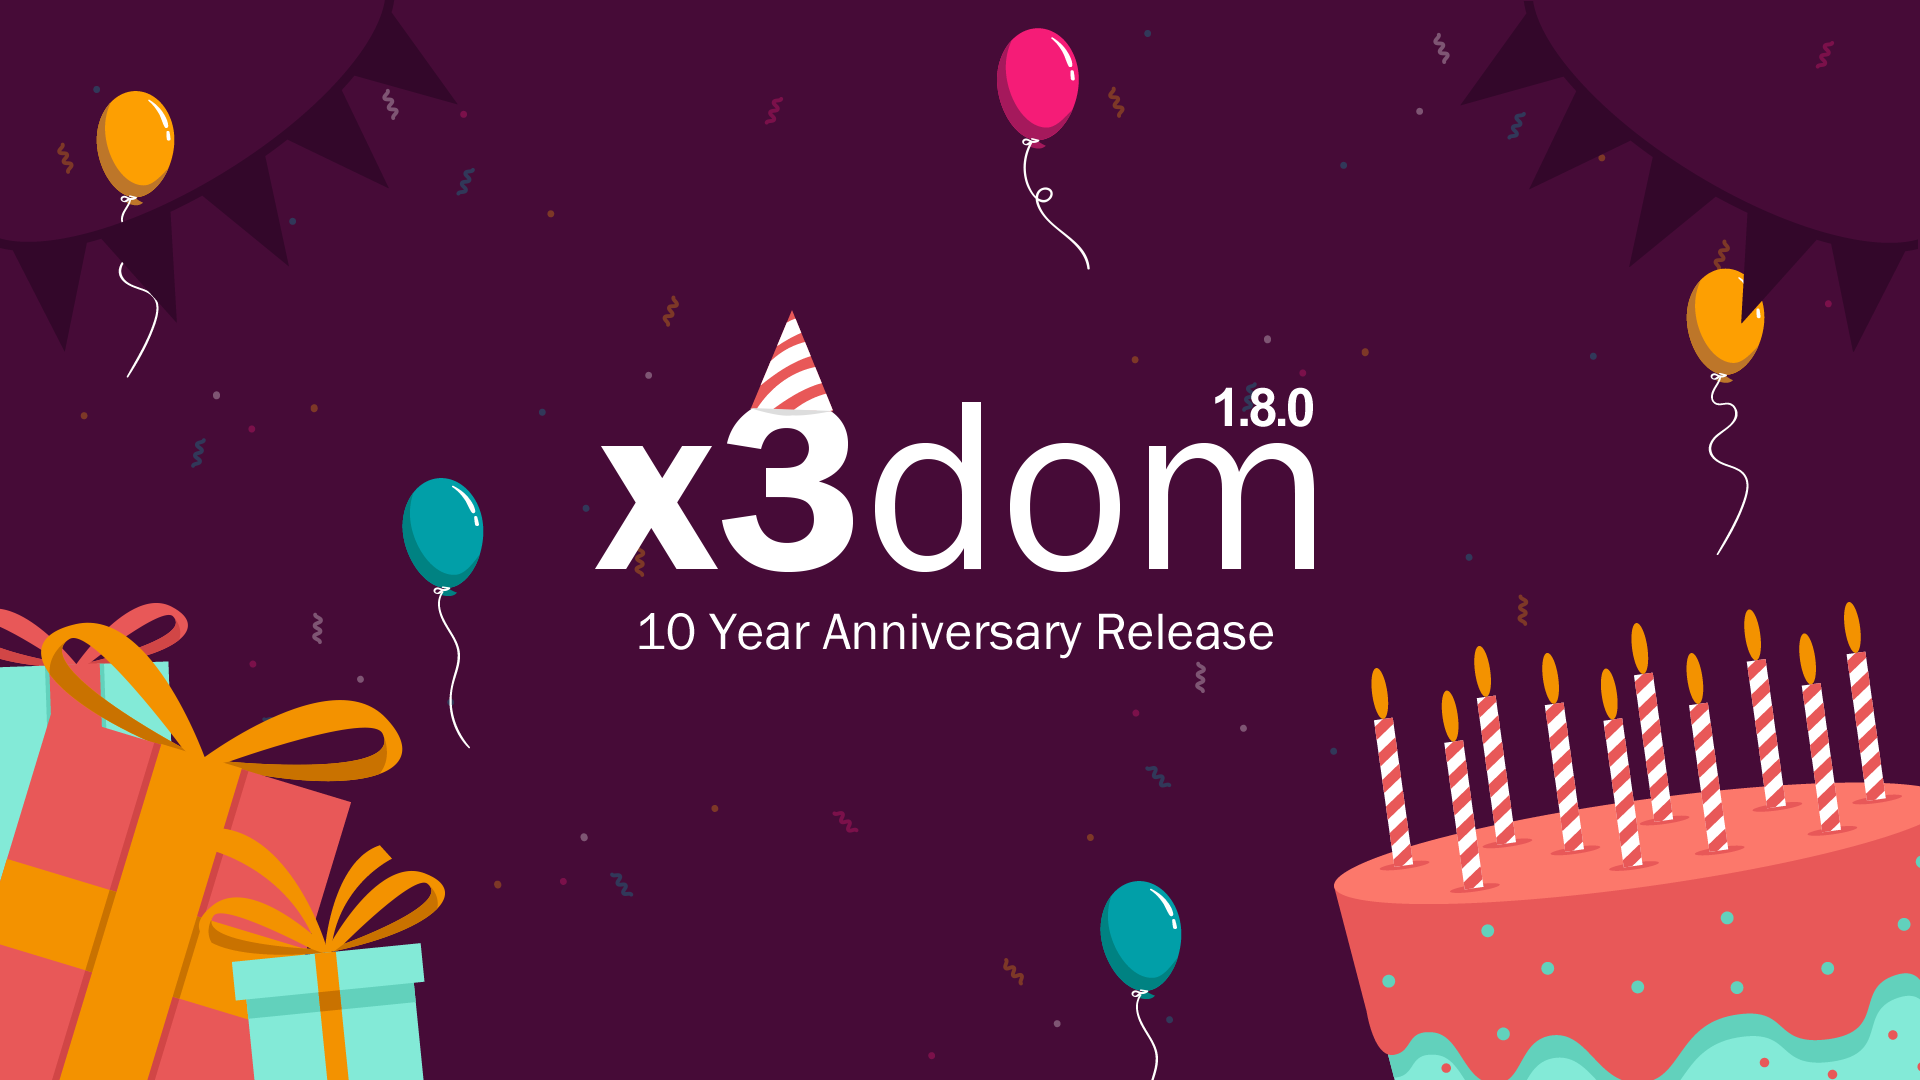 x3dom - 10 Year Anniversary Release